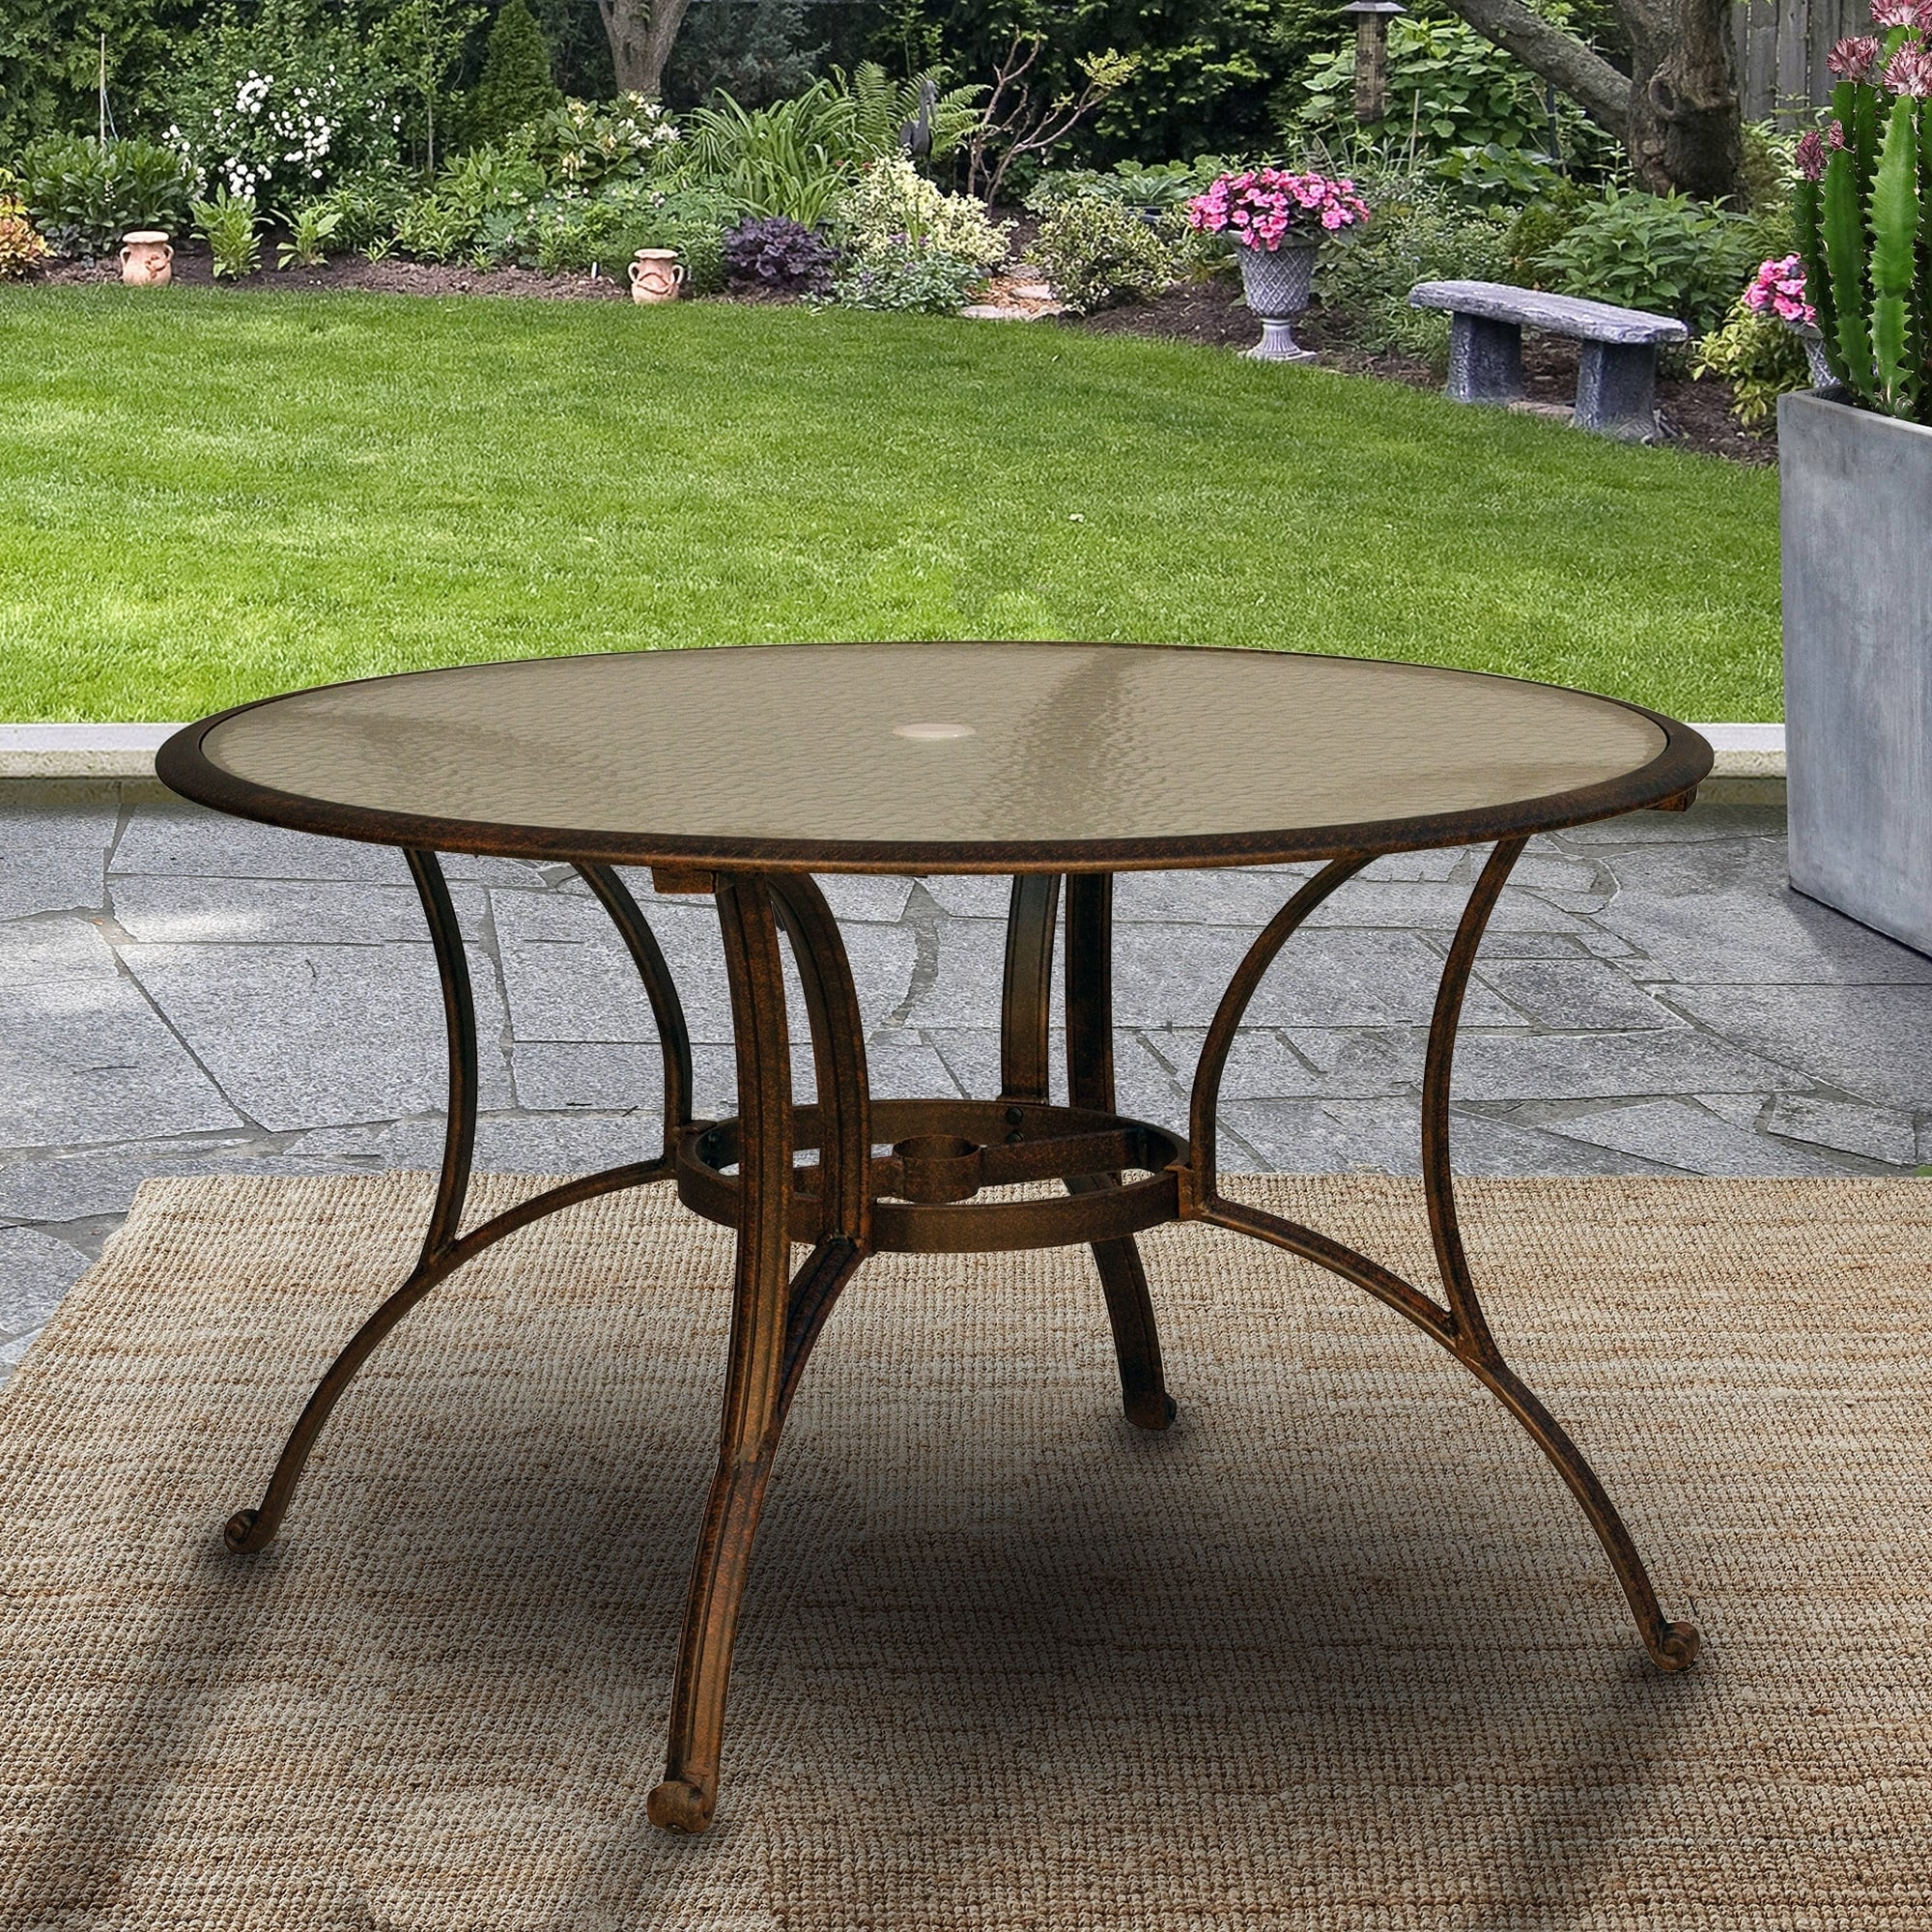 Outdoor Patio Table Round Tempered Glass Top Dining Table 48 With Umbrella Hole Bronze Overstock 29745064